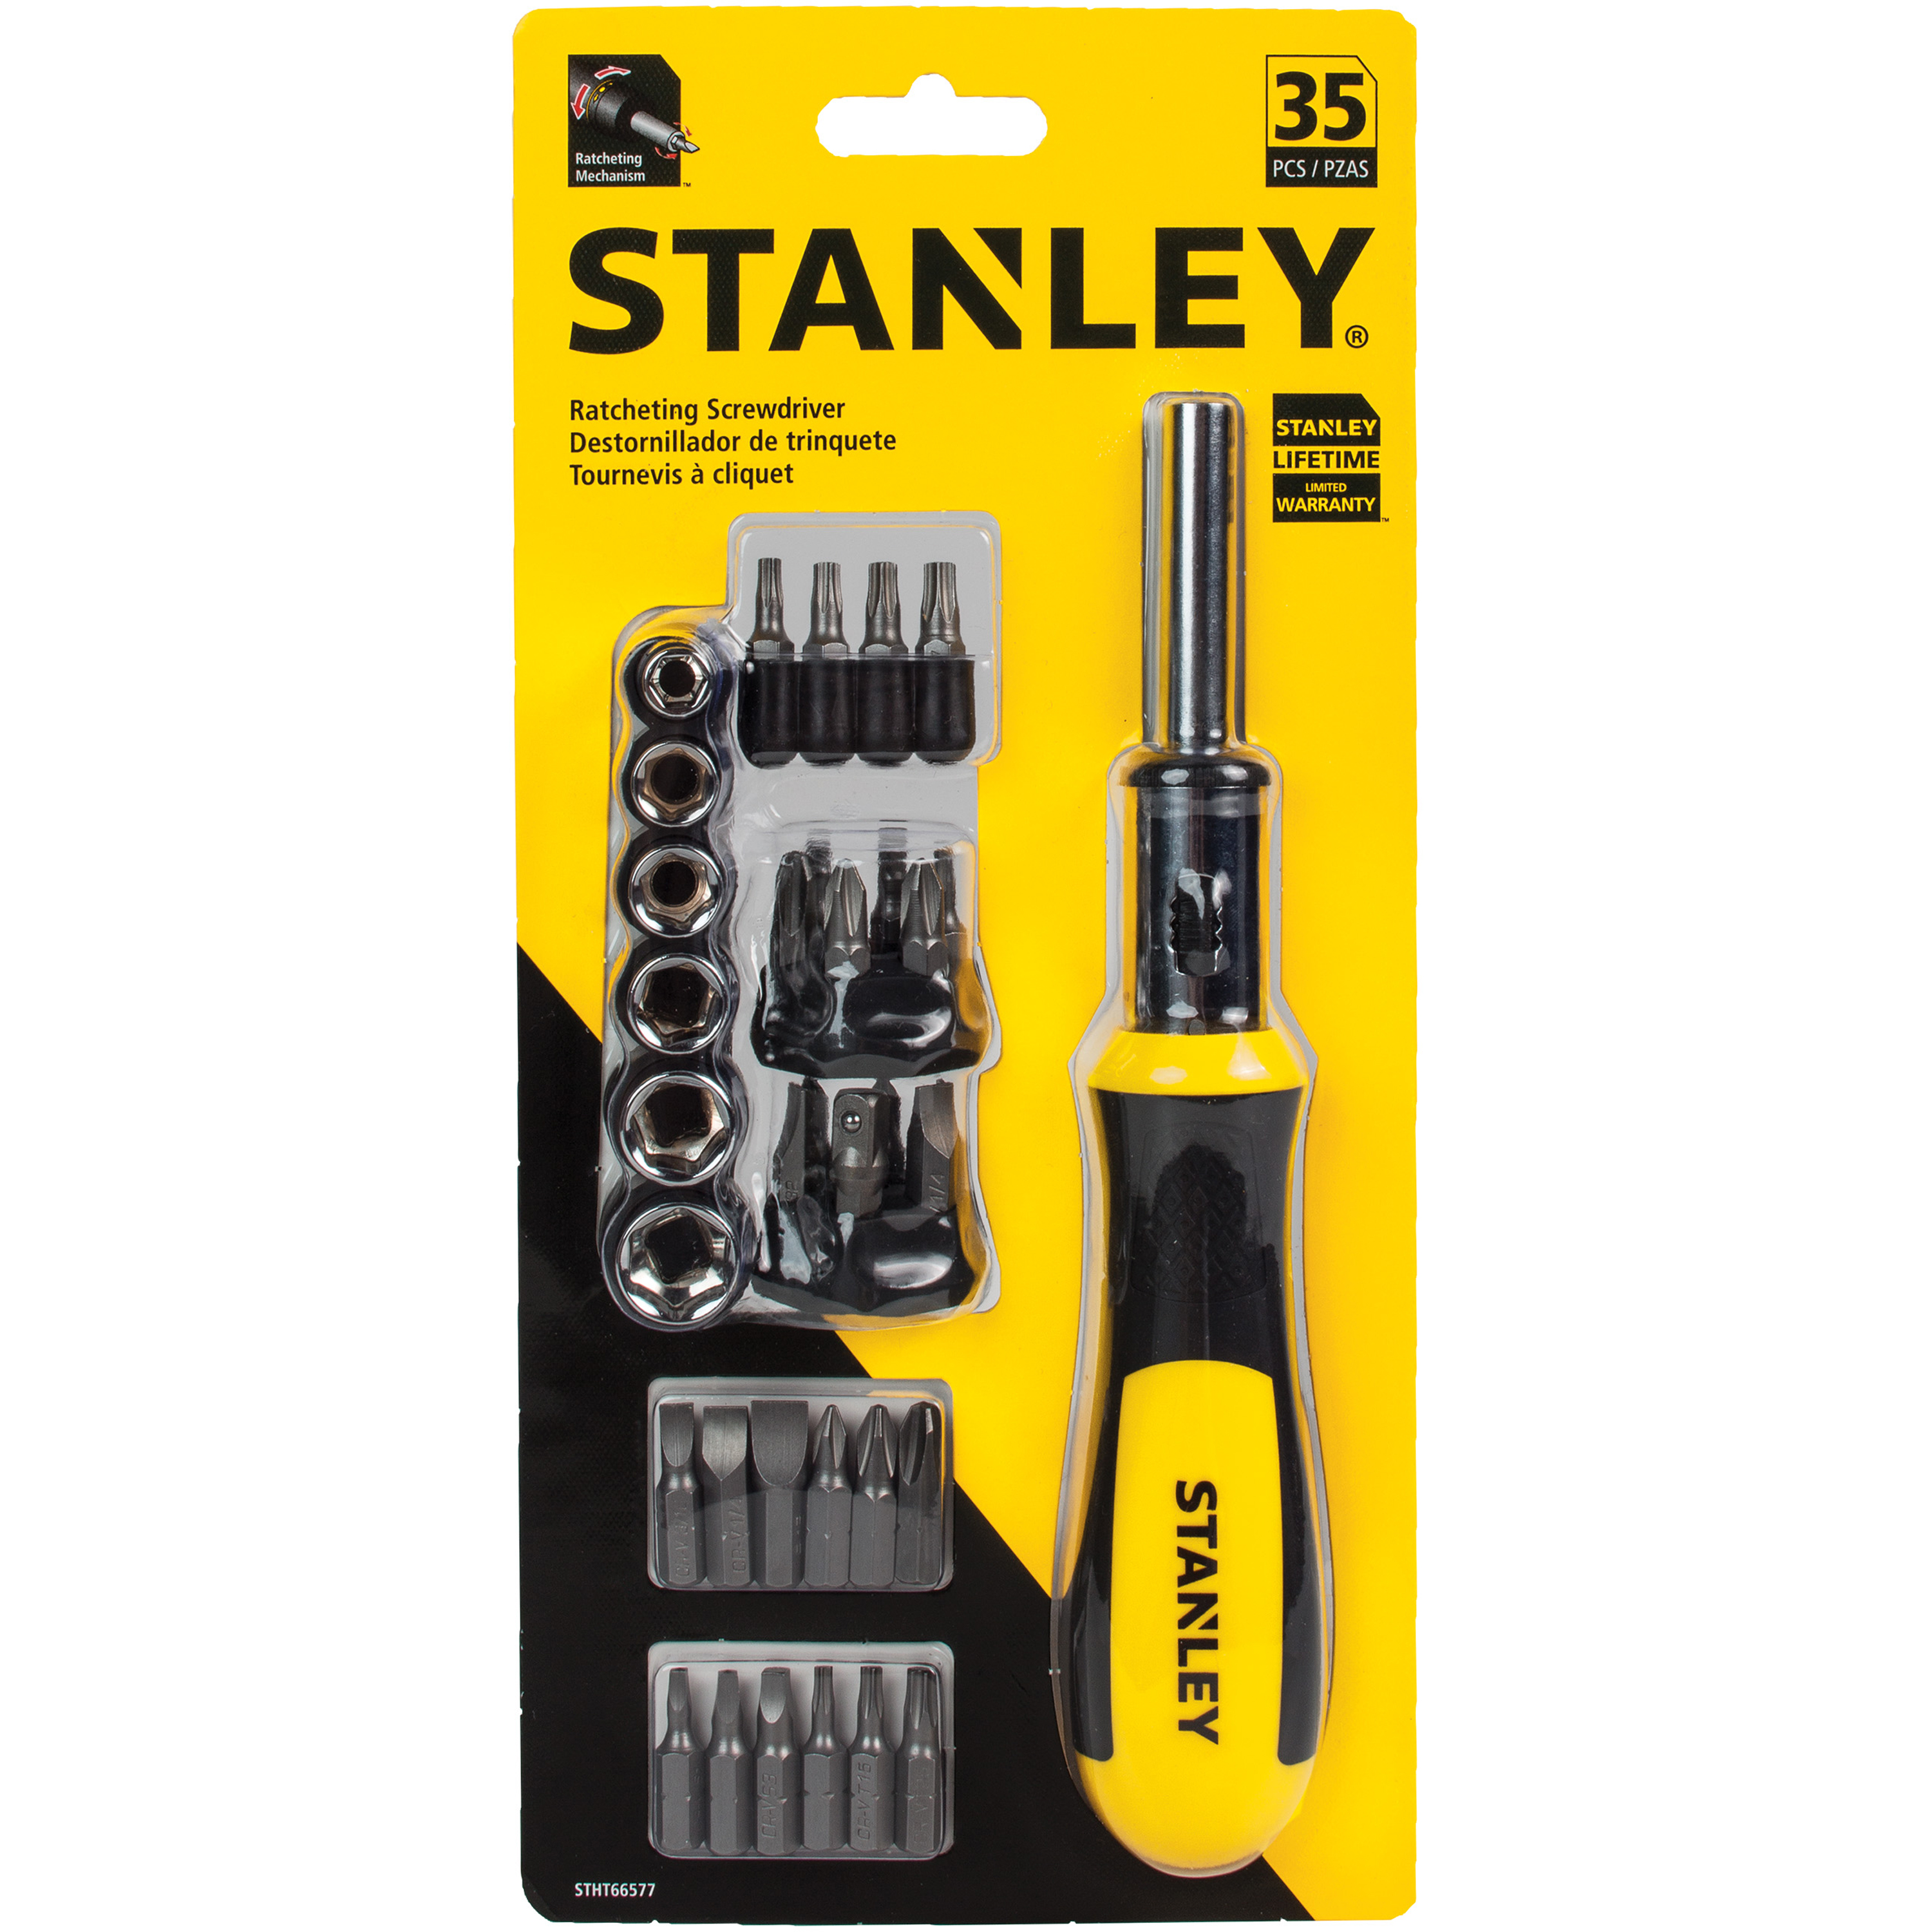 STANLEY 35pc Ratcheting Screwdriver Set | STHT66577